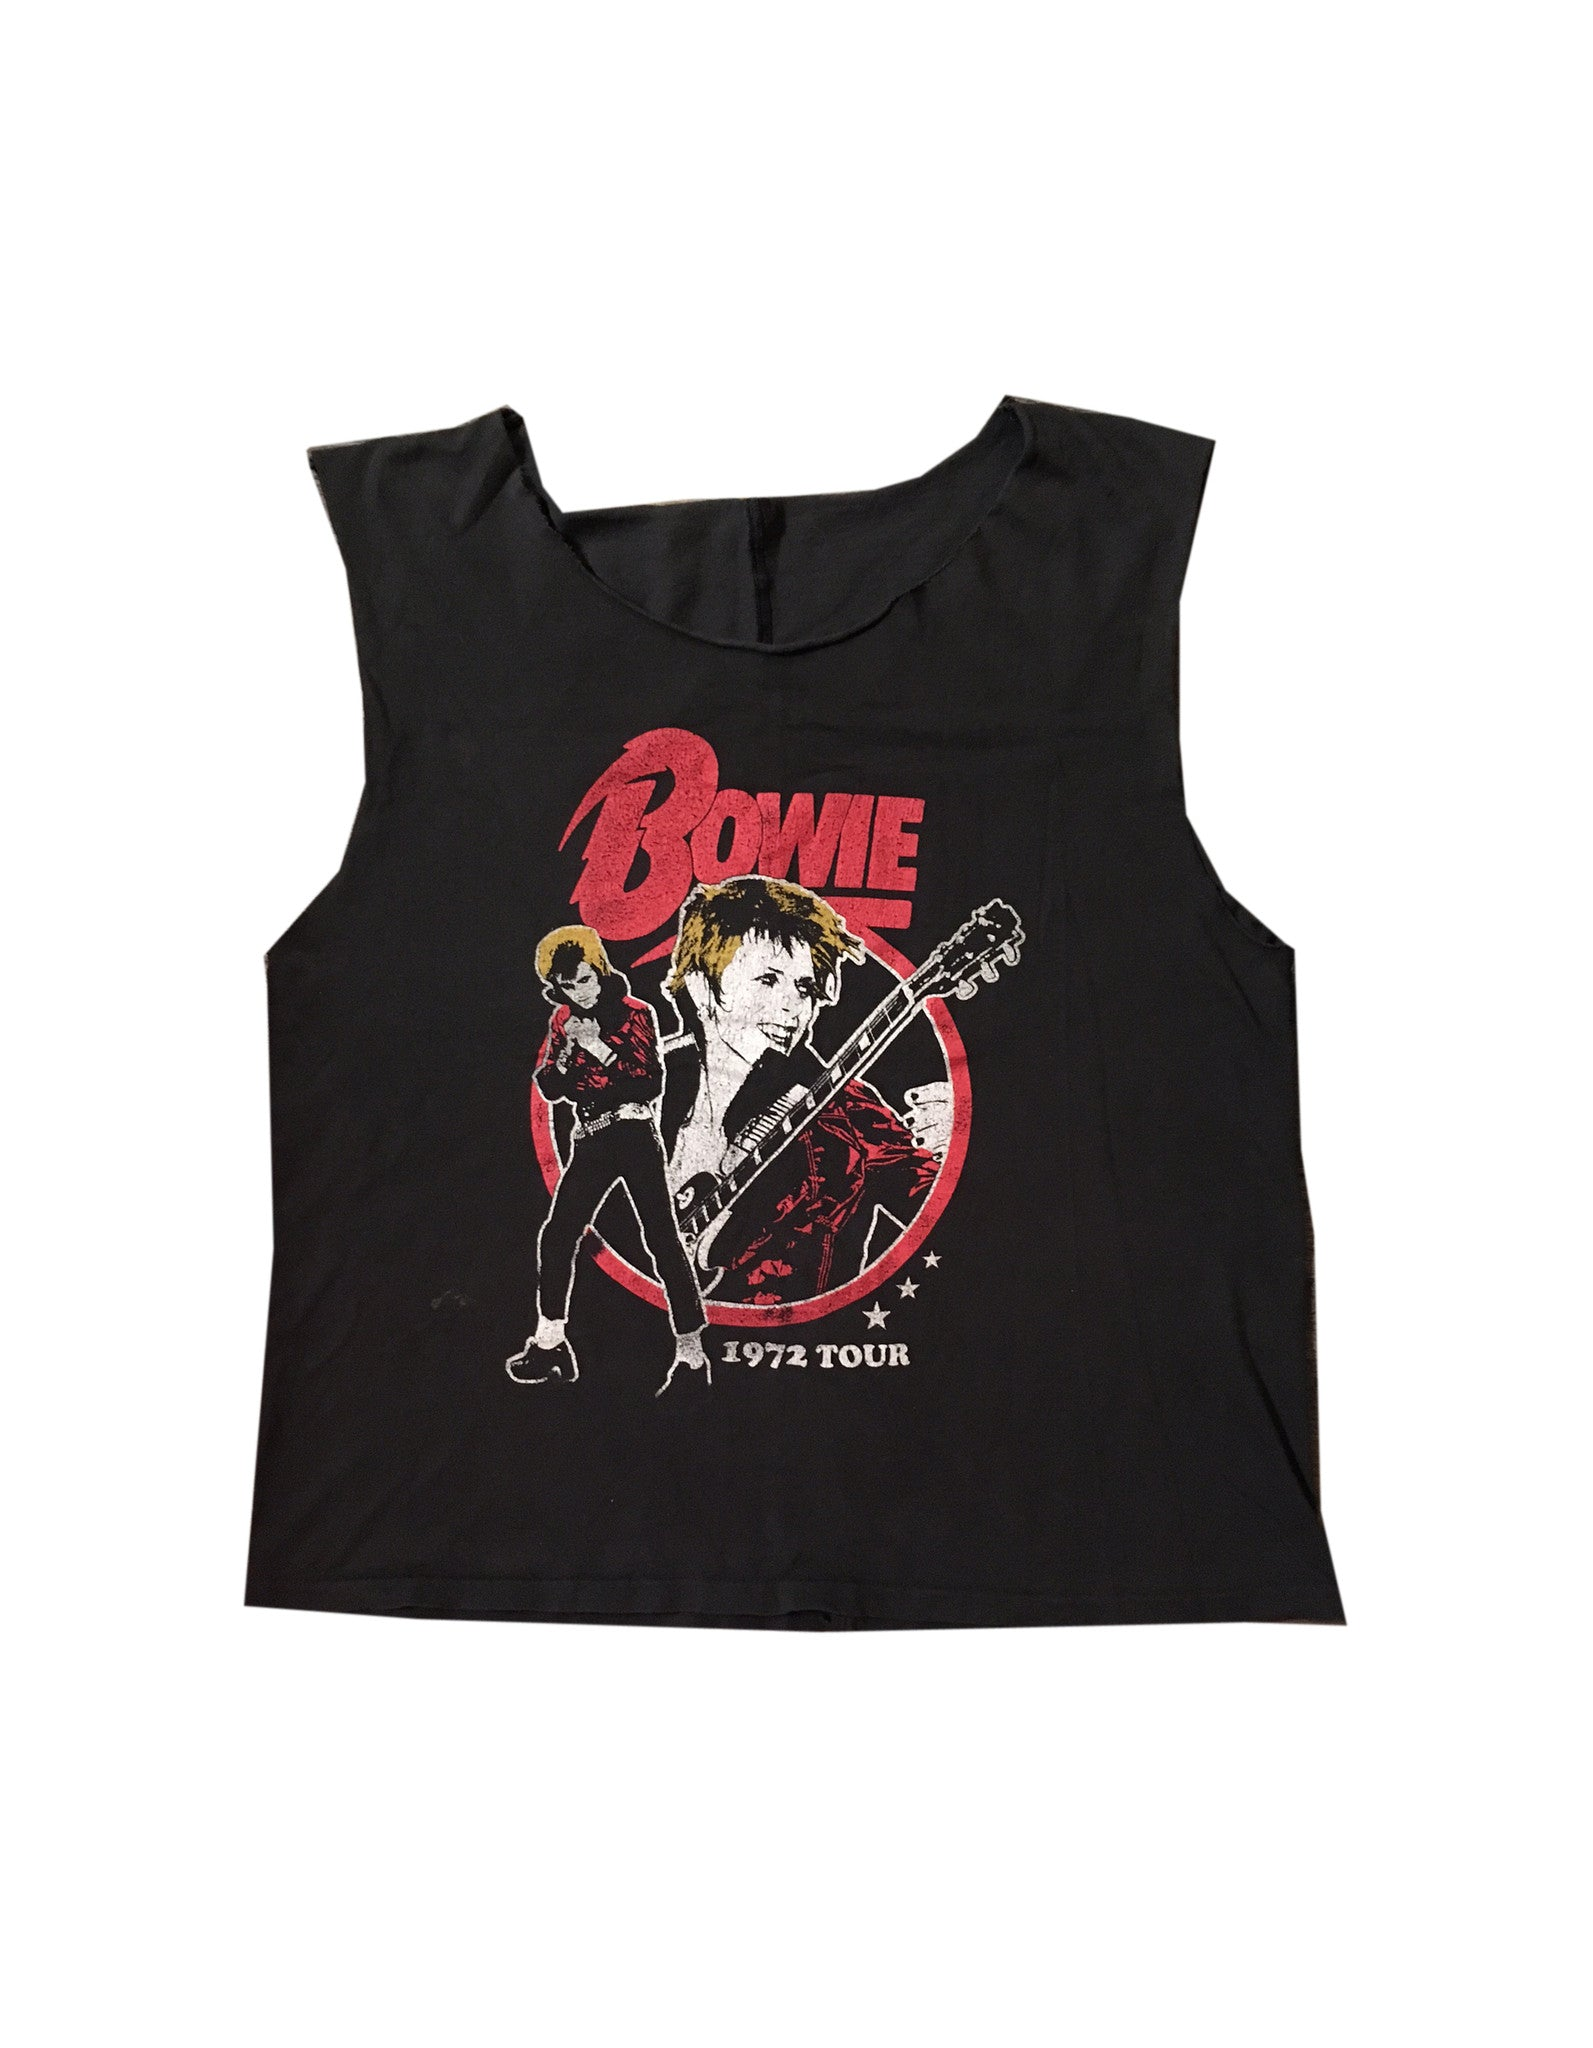 Vintage David Bowie 1972 Tour T